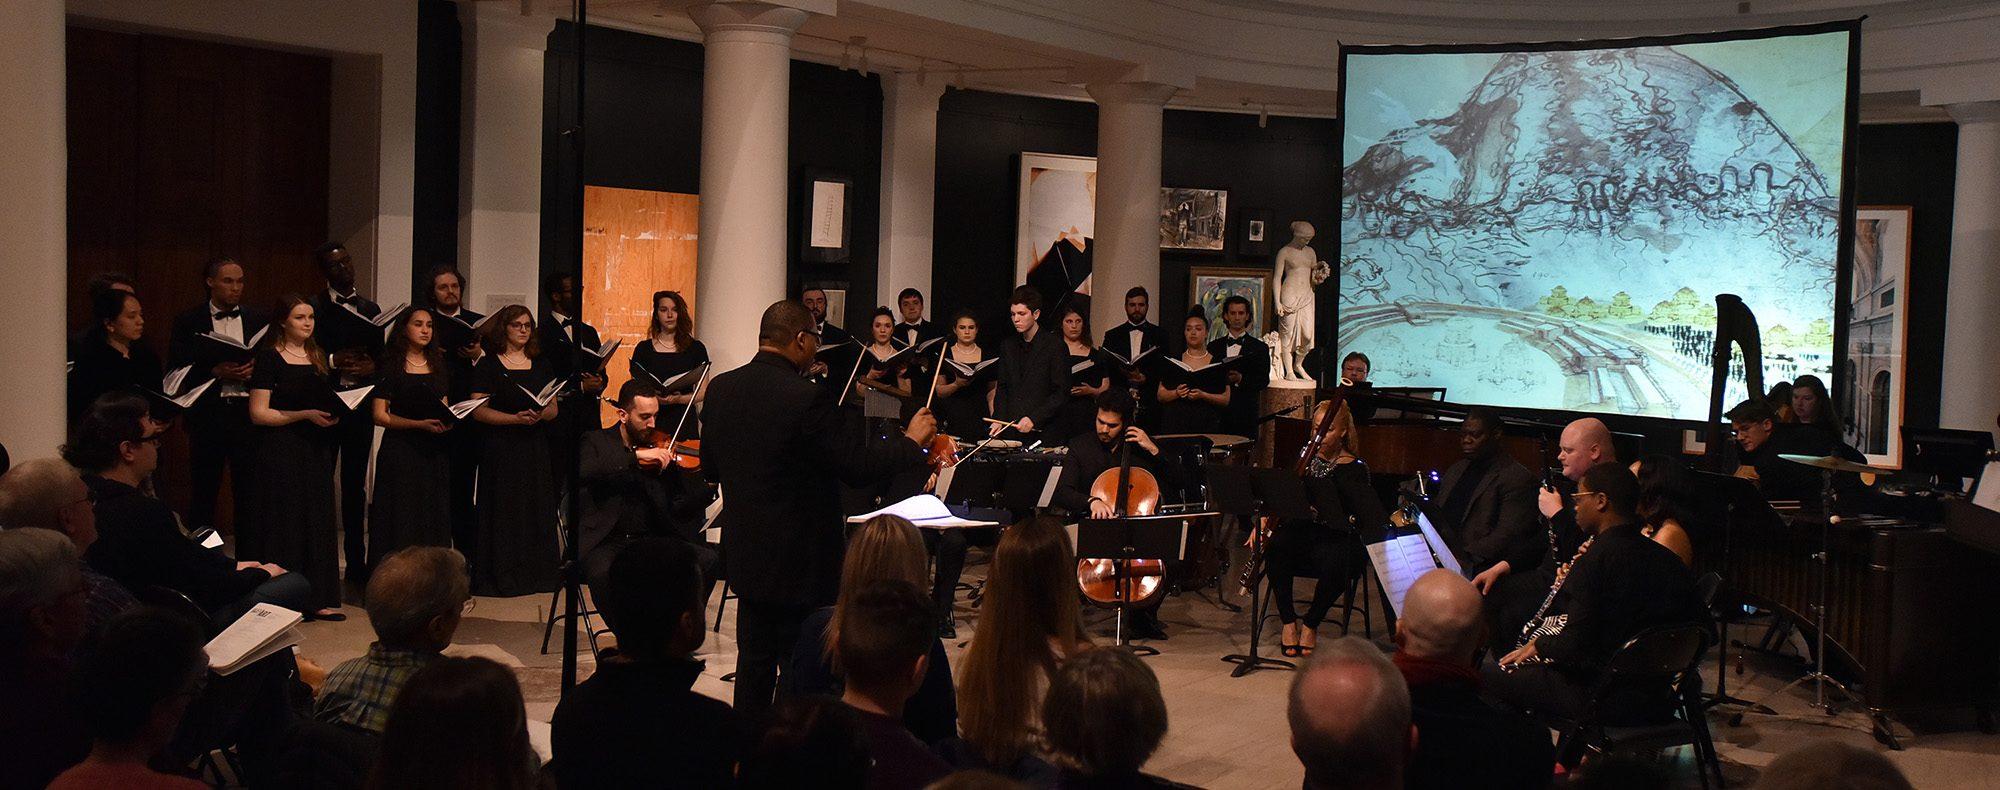 Chamber Choir in concert at the University of Michigan Museum of Art. Showing the choir, conducted by Professor Eugene Rogers in front of a screen depicting a painting from the collection.